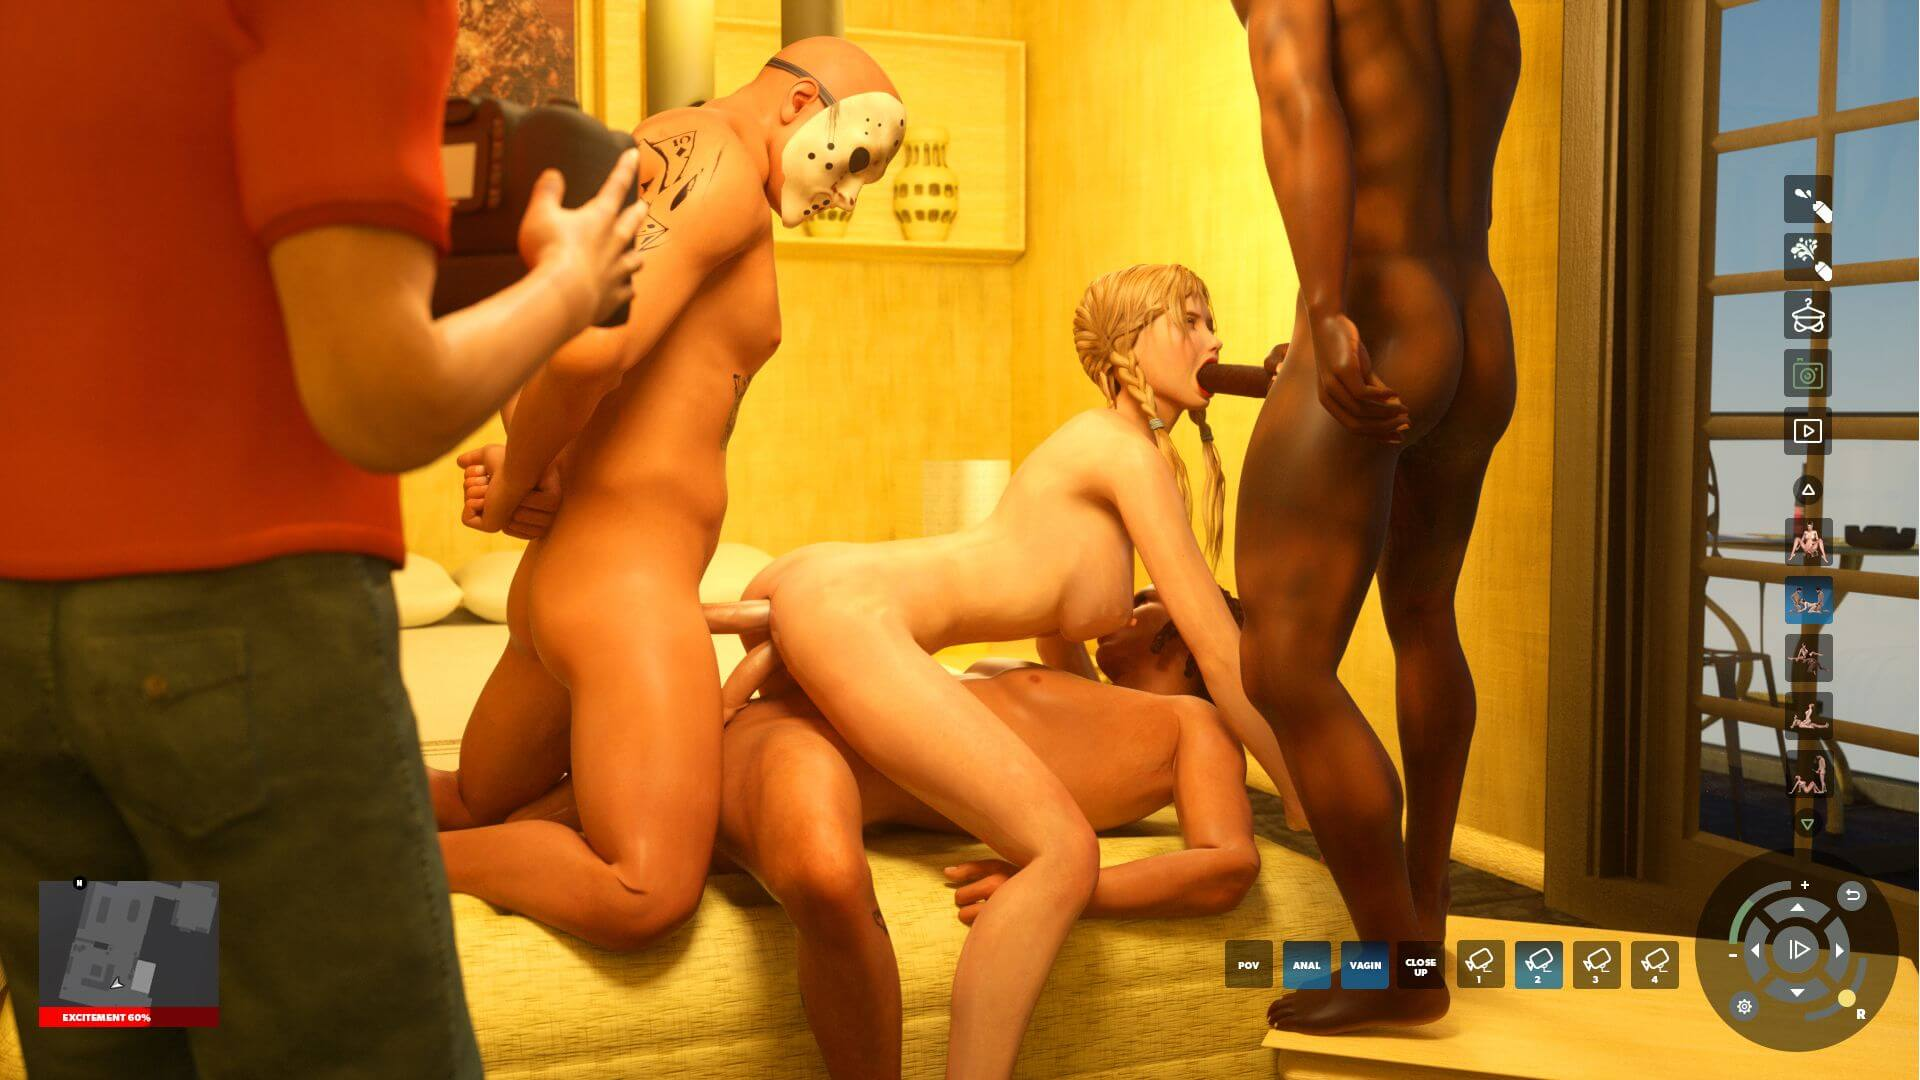 3d games porno online smut videos